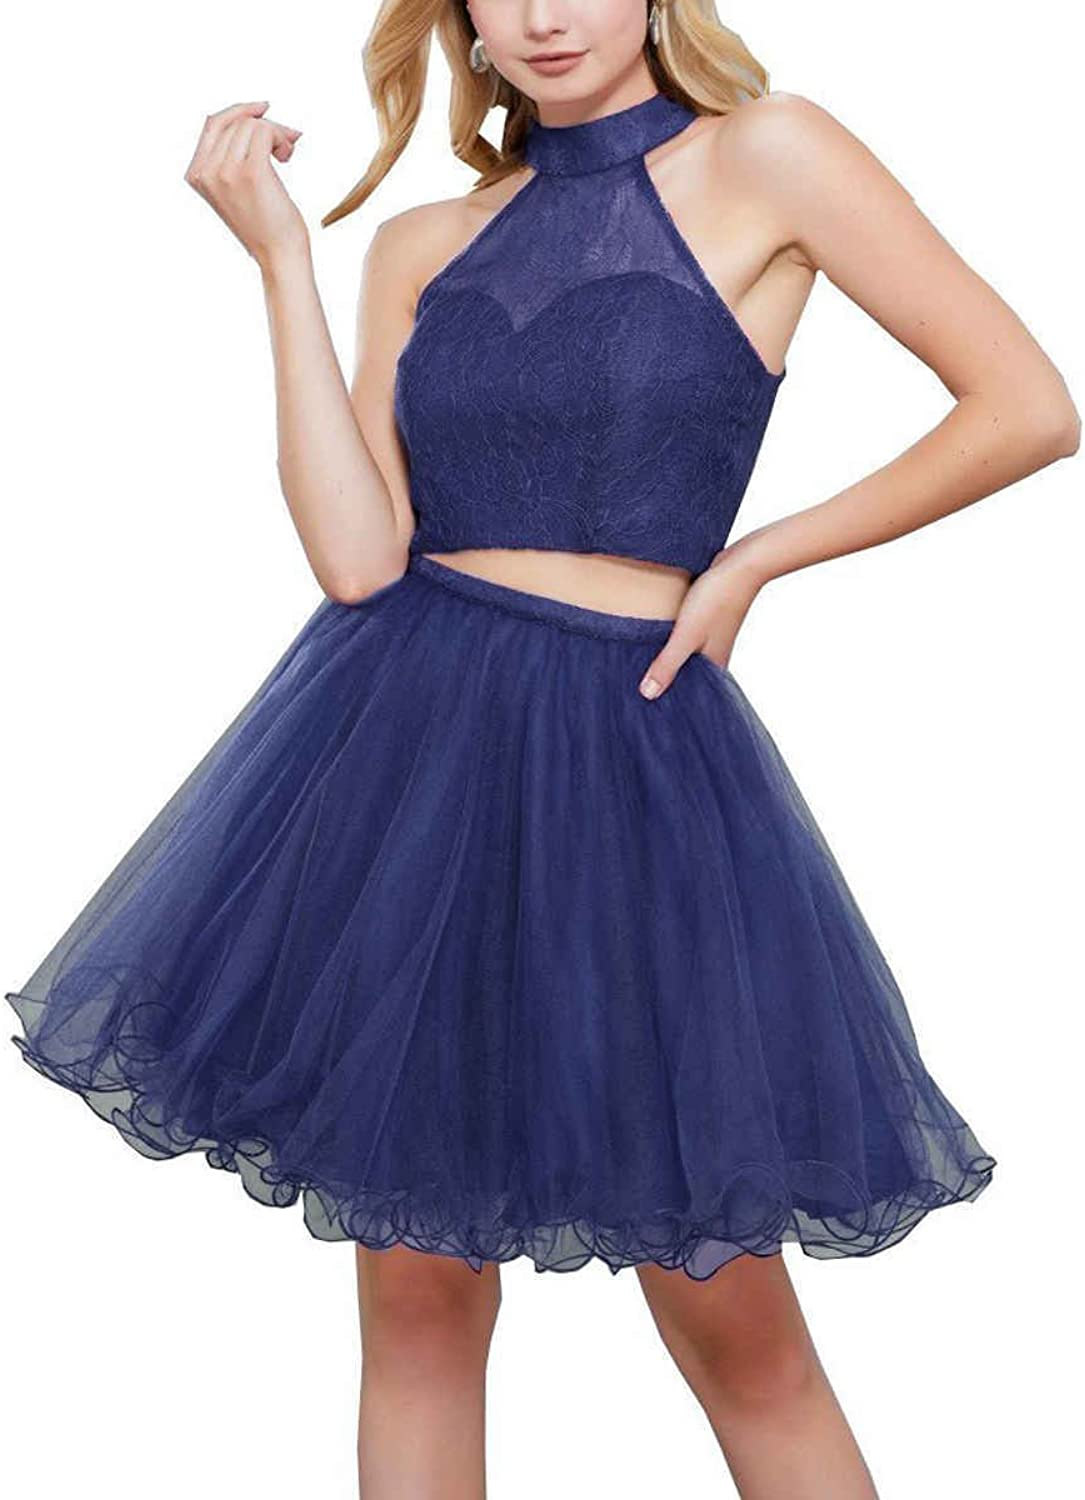 LastBridal Women Halter Tulle Two Piece Short Prom Homecoming Dresses for Juniors Formal Party Gown LB0189 bluee